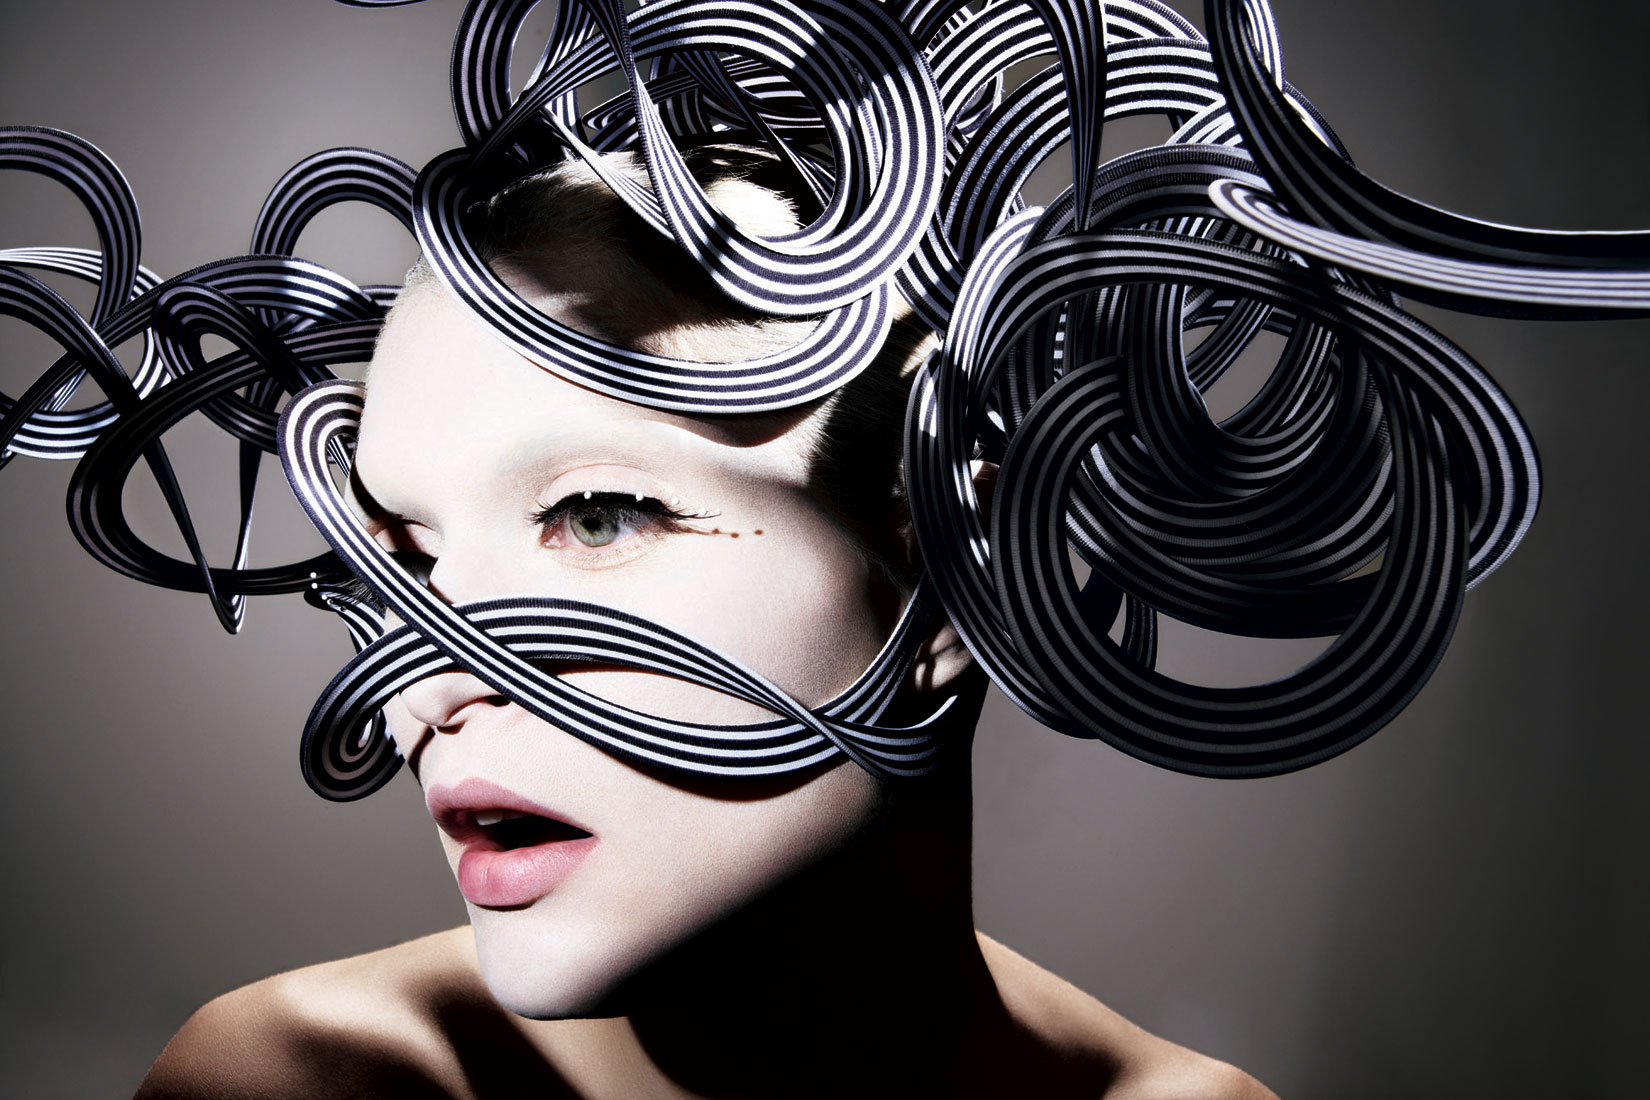 Philip_Treacy_1